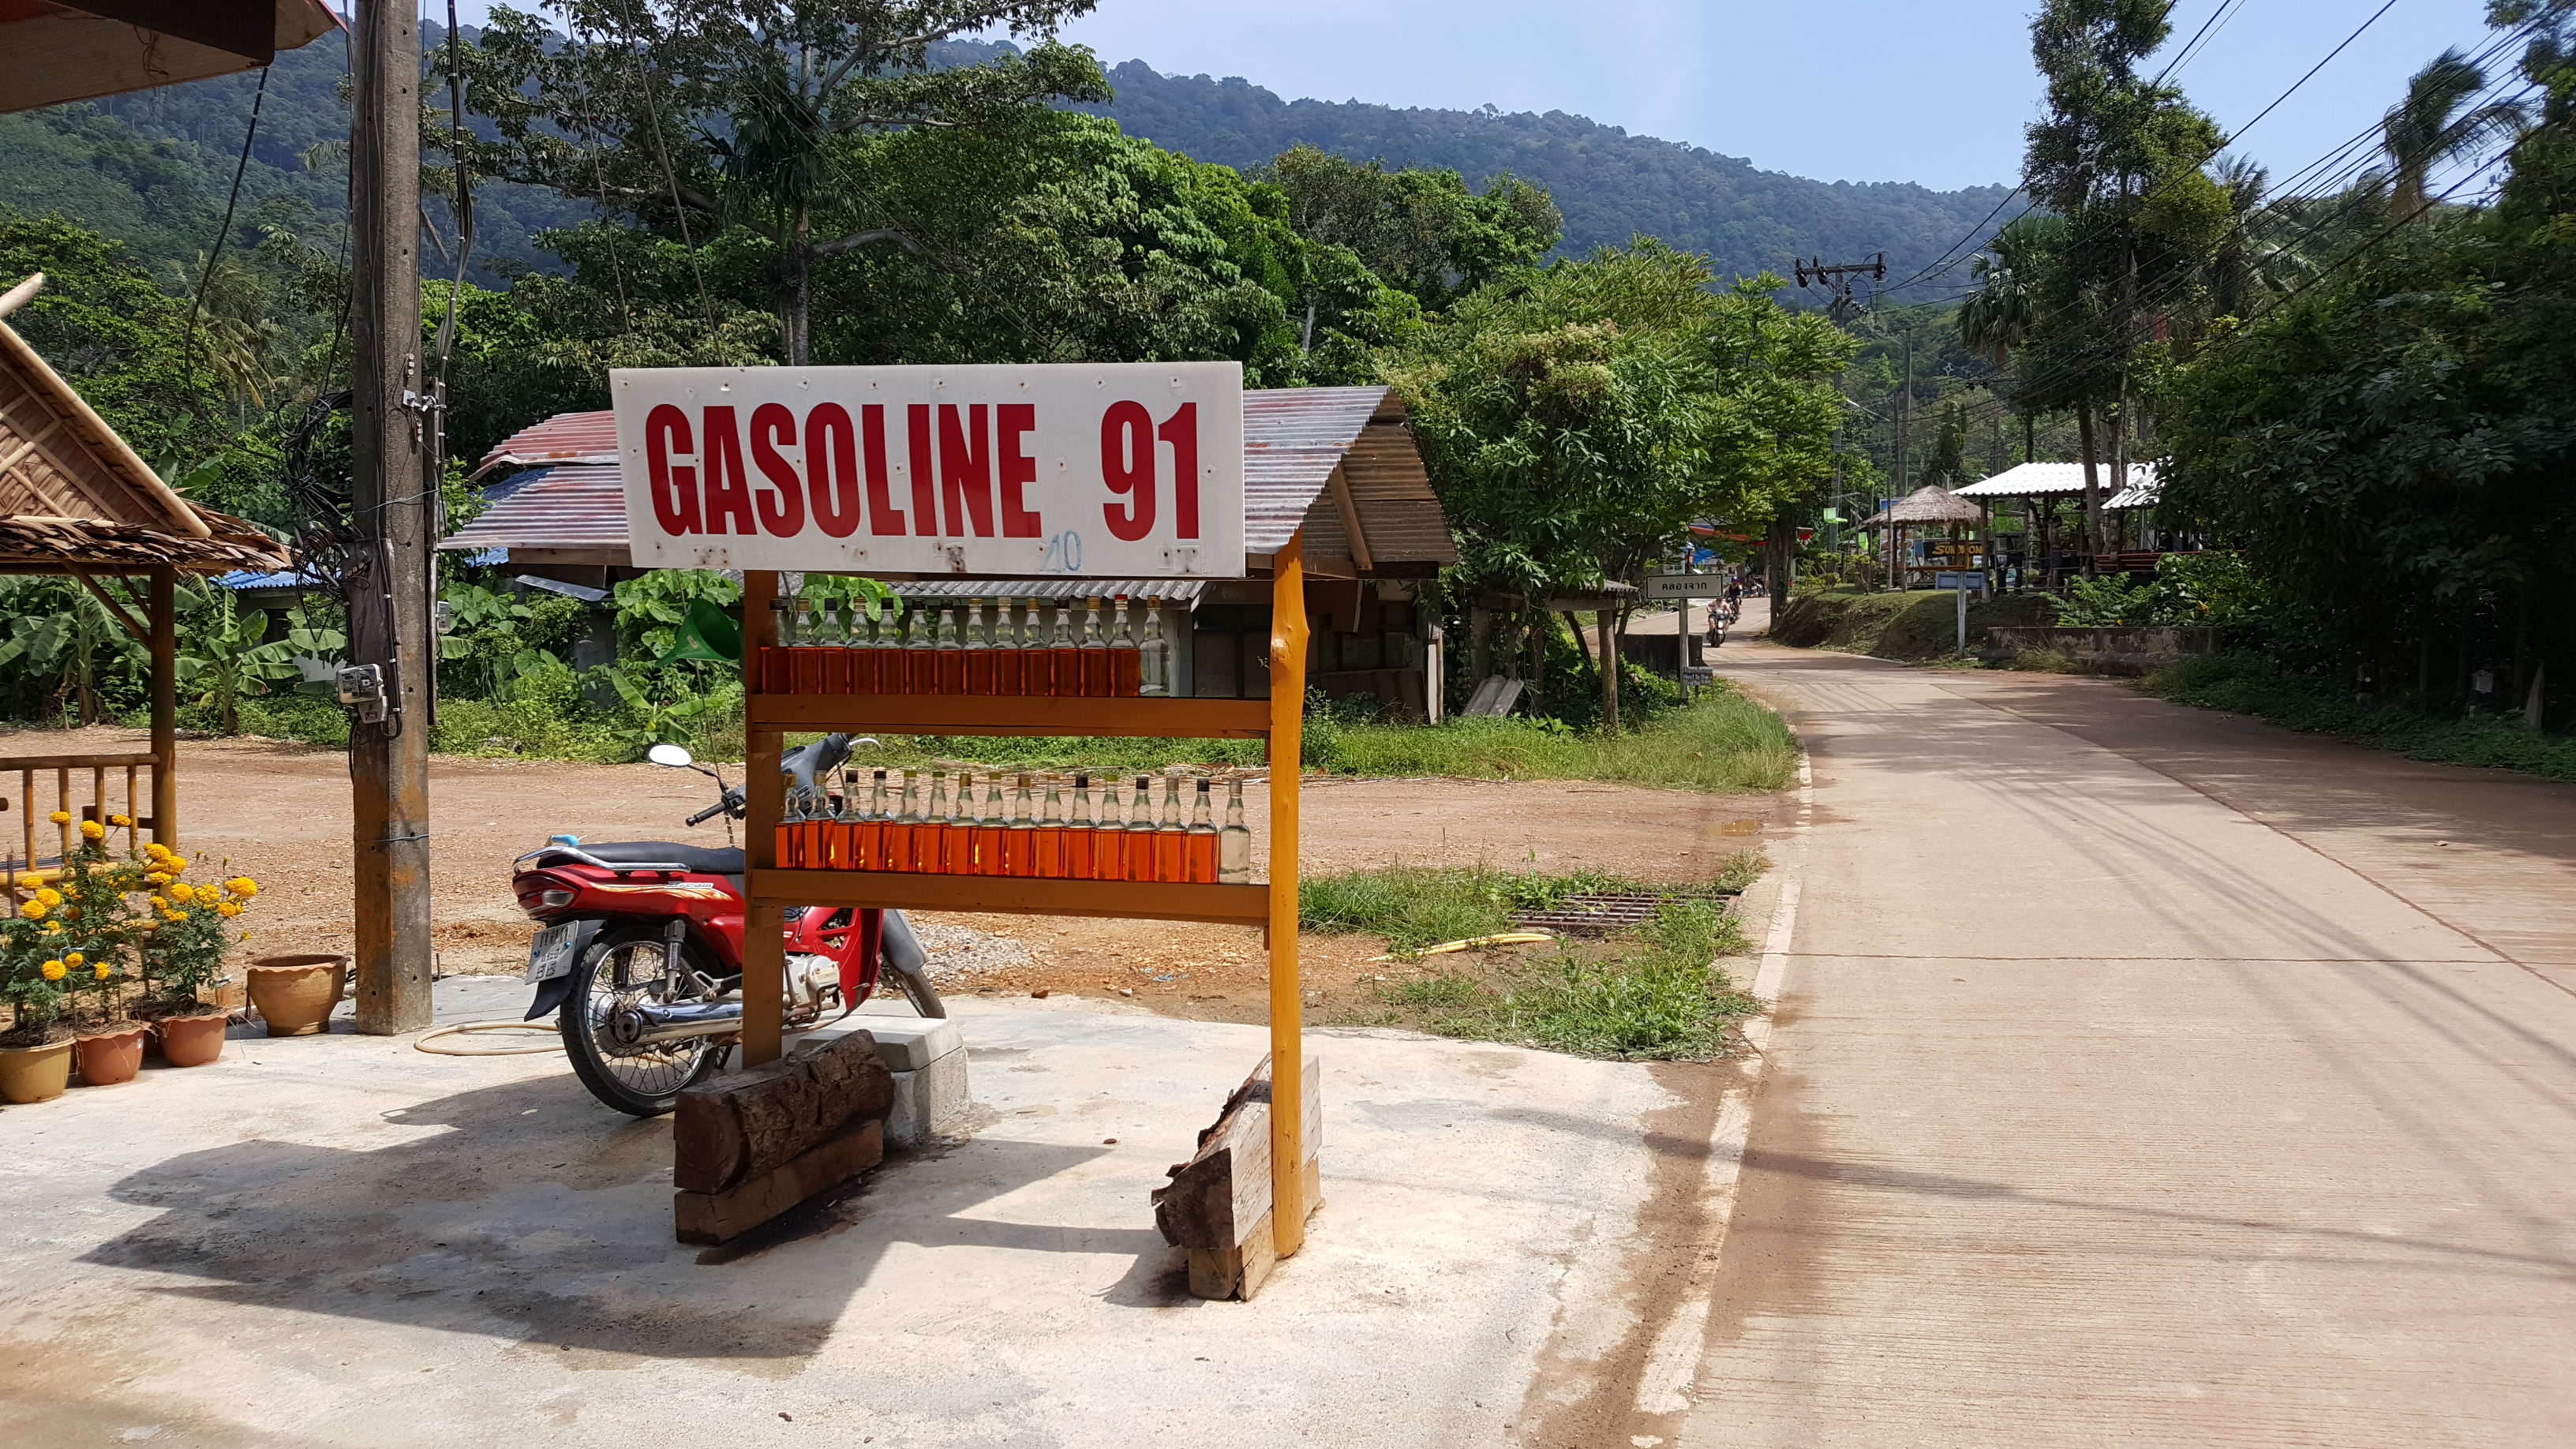 A small wooden shelving unit stands by the roadside with 'Gasoline 91' on a sign. Two rows of amber gasoline are displayed. in the background are lush green trees, the beginning of the rainforest